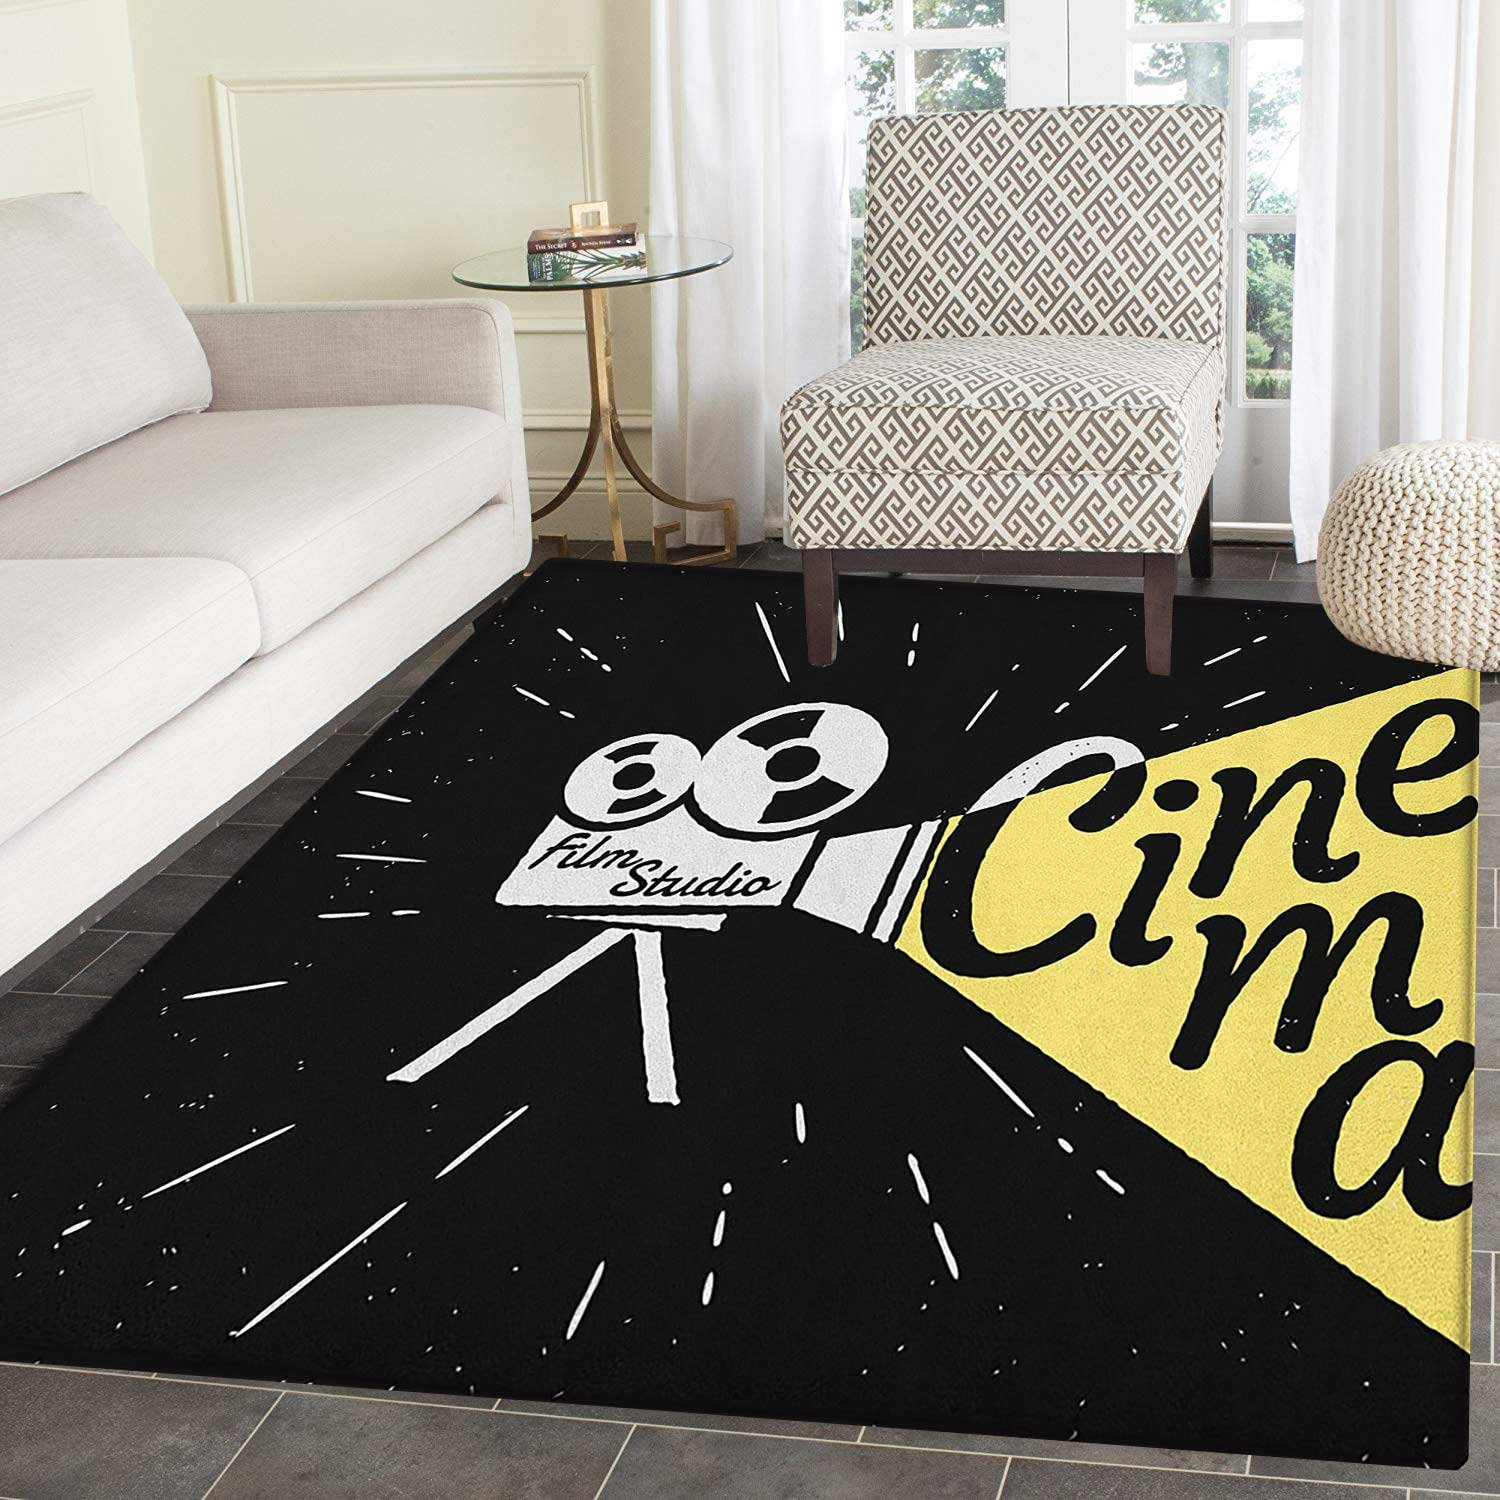 Movie Theater Area Silky Smooth Rugs Movie Projector Sketch with Grunge Cinema Lettering on Black Backdrop Floor Mat Pattern 4'x6' Yellow Black White